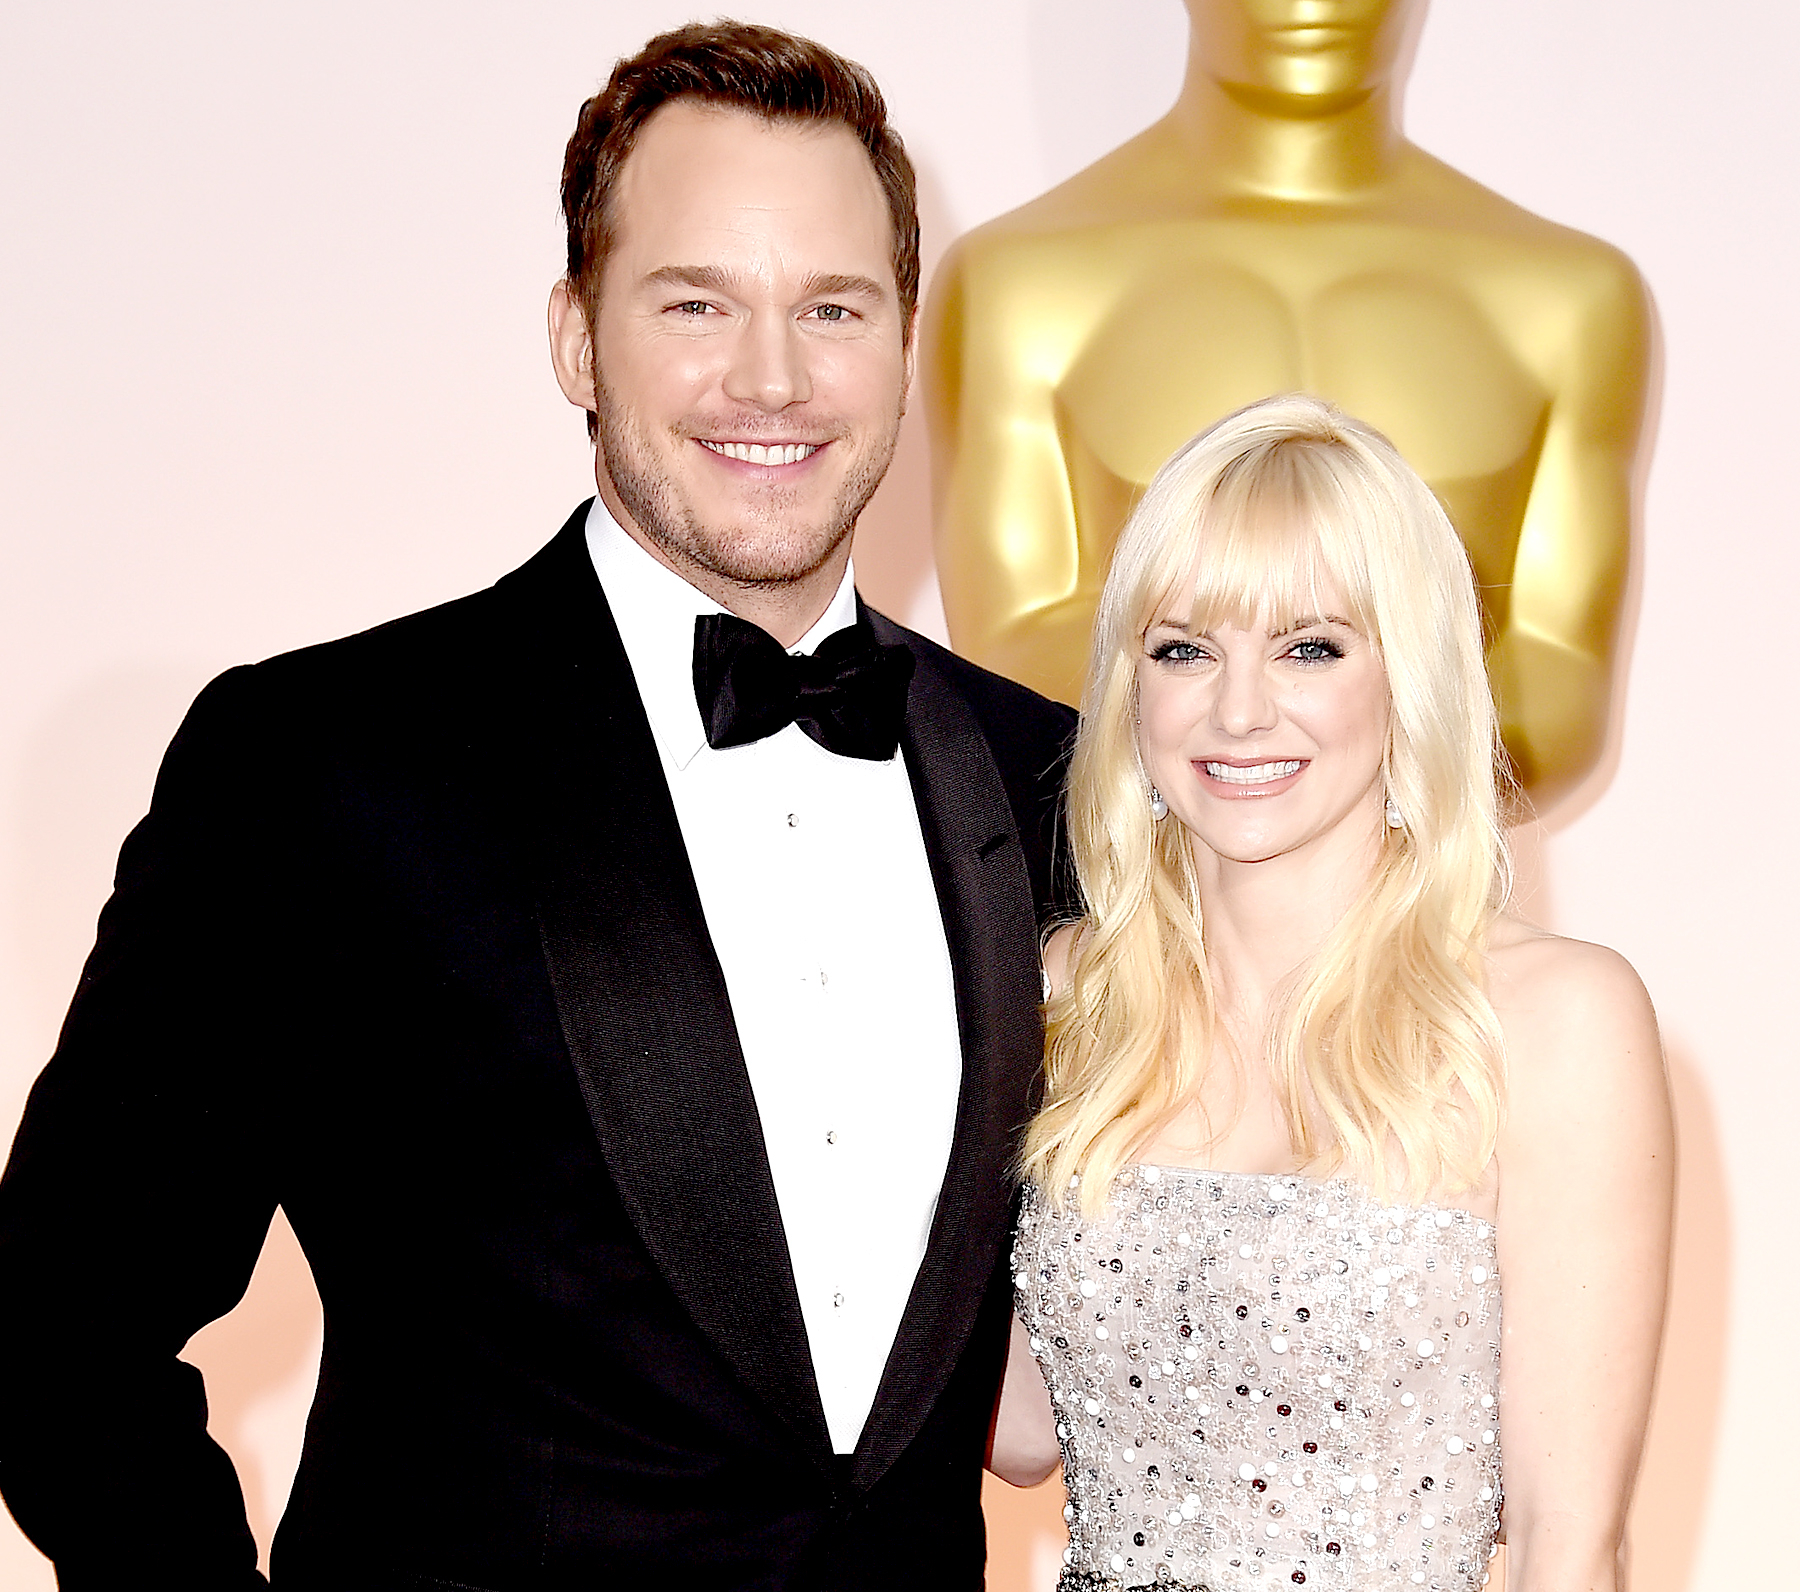 Chris Pratt and Anna Faris attend the 87th Annual Academy Awards at Hollywood & Highland Center on February 22, 2015 in Hollywood, California.